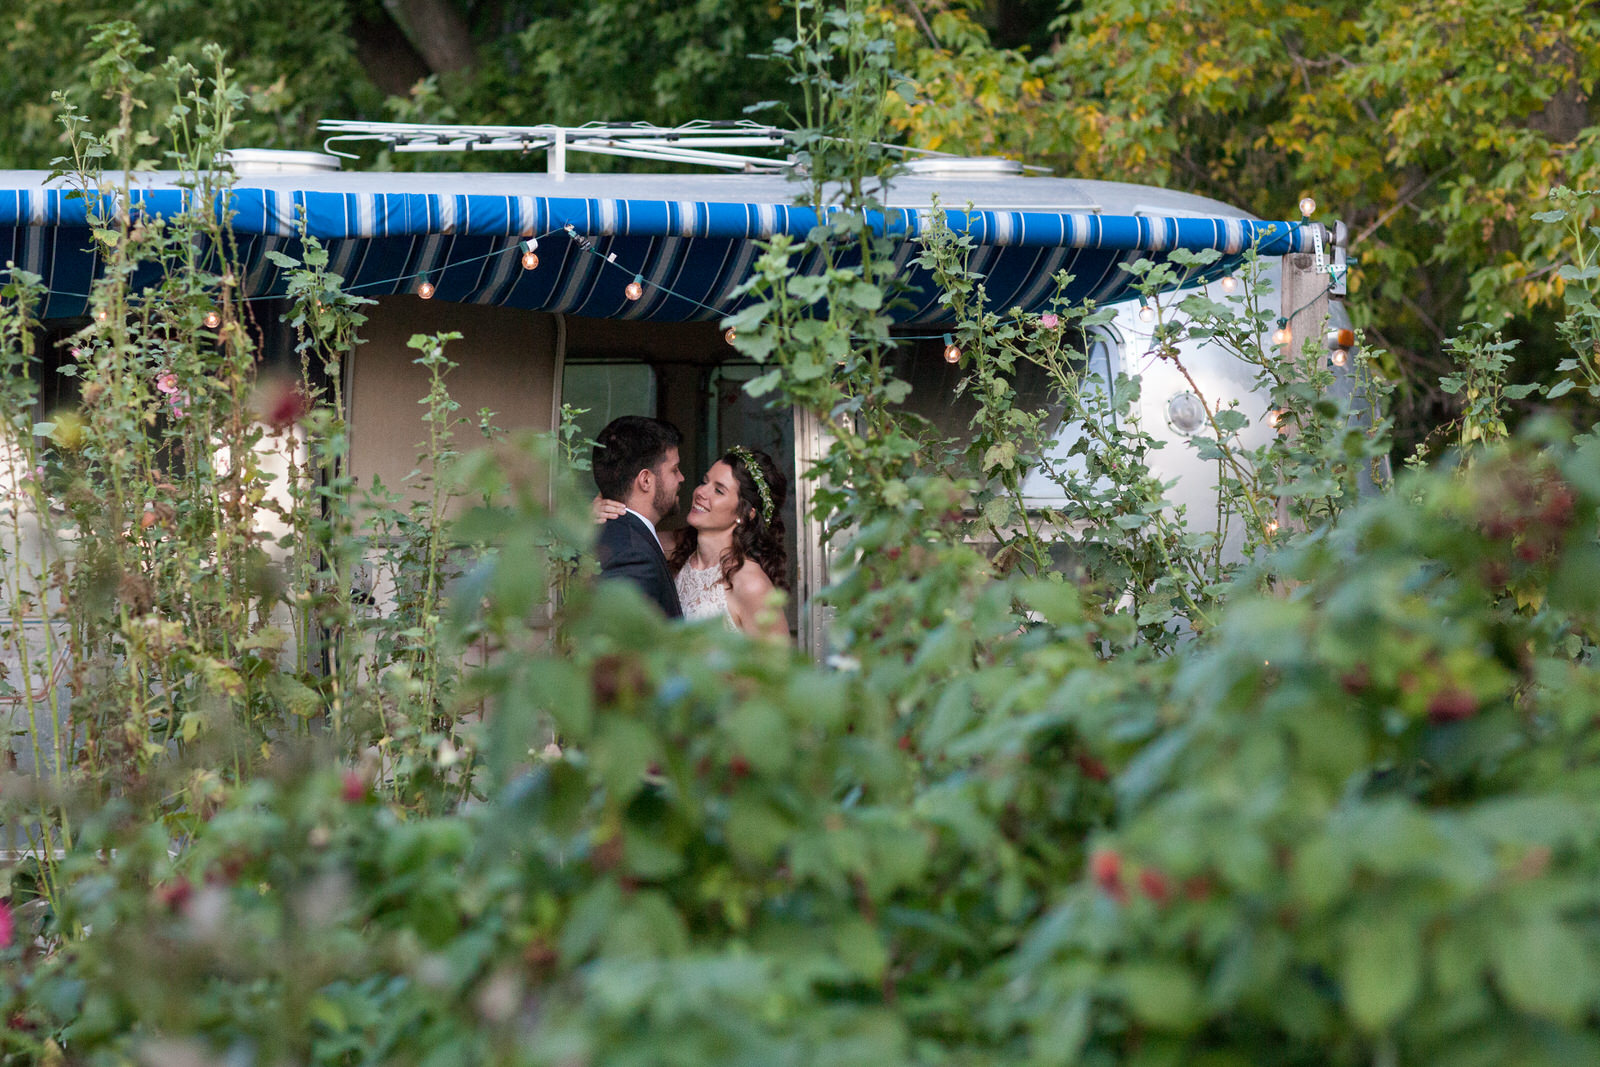 bride and groom in the door of an airstream looking lovingly at each other surrounded by greenery